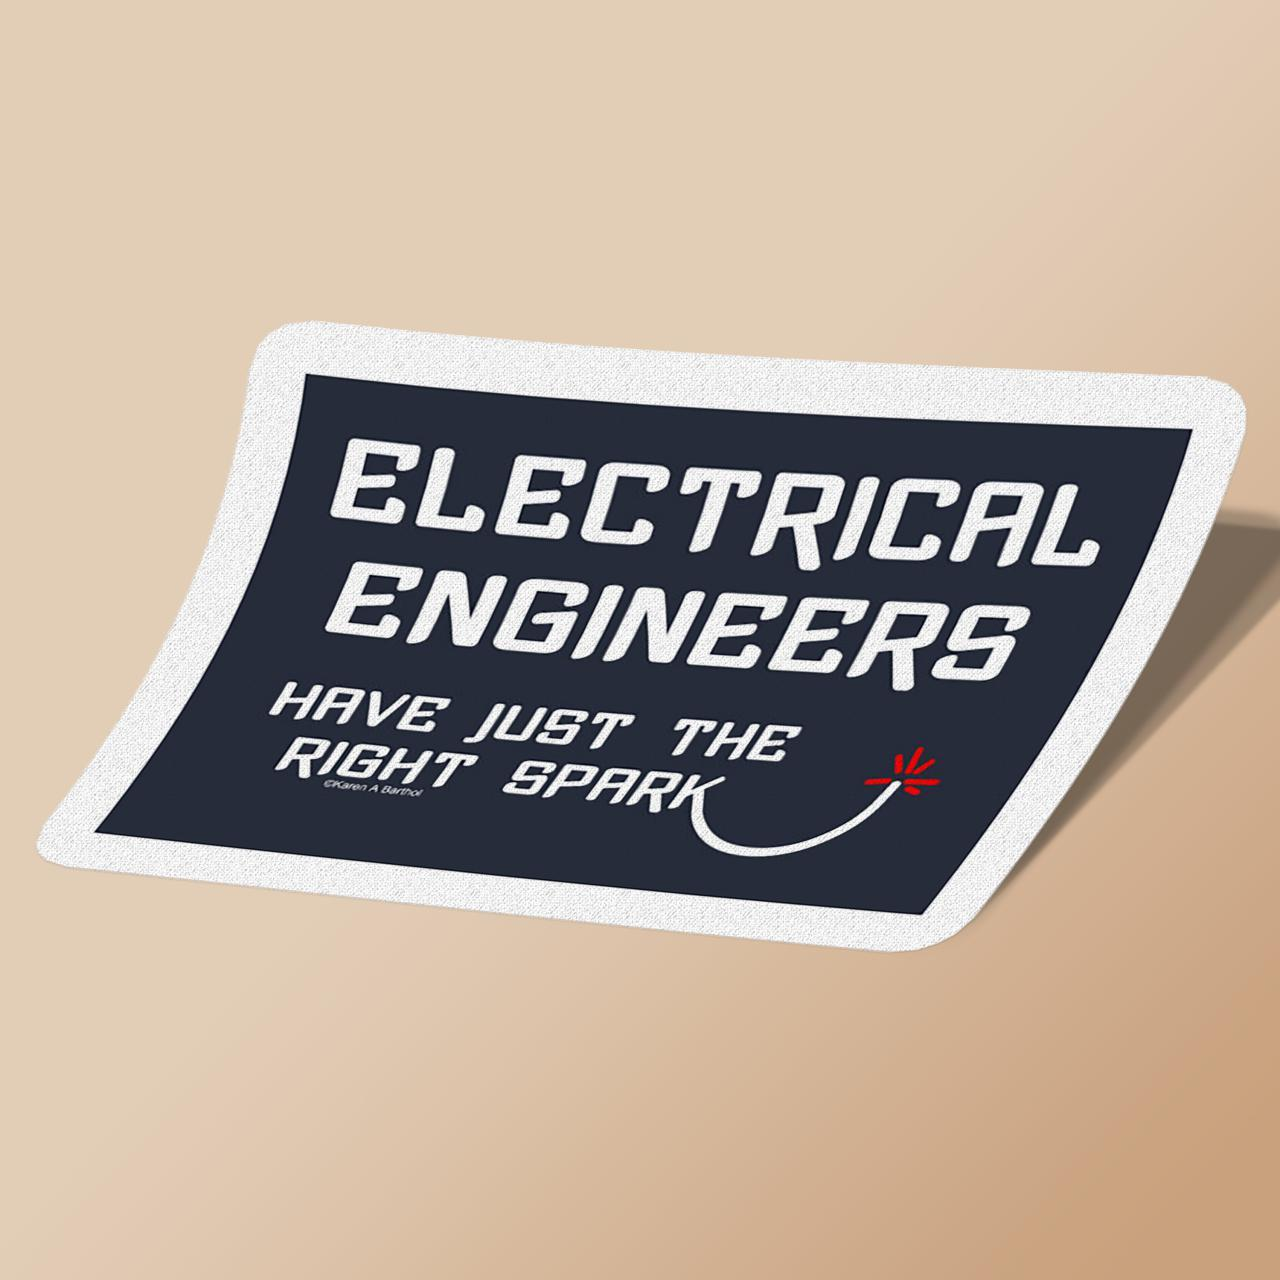 Electrical Engineering Right Spark White